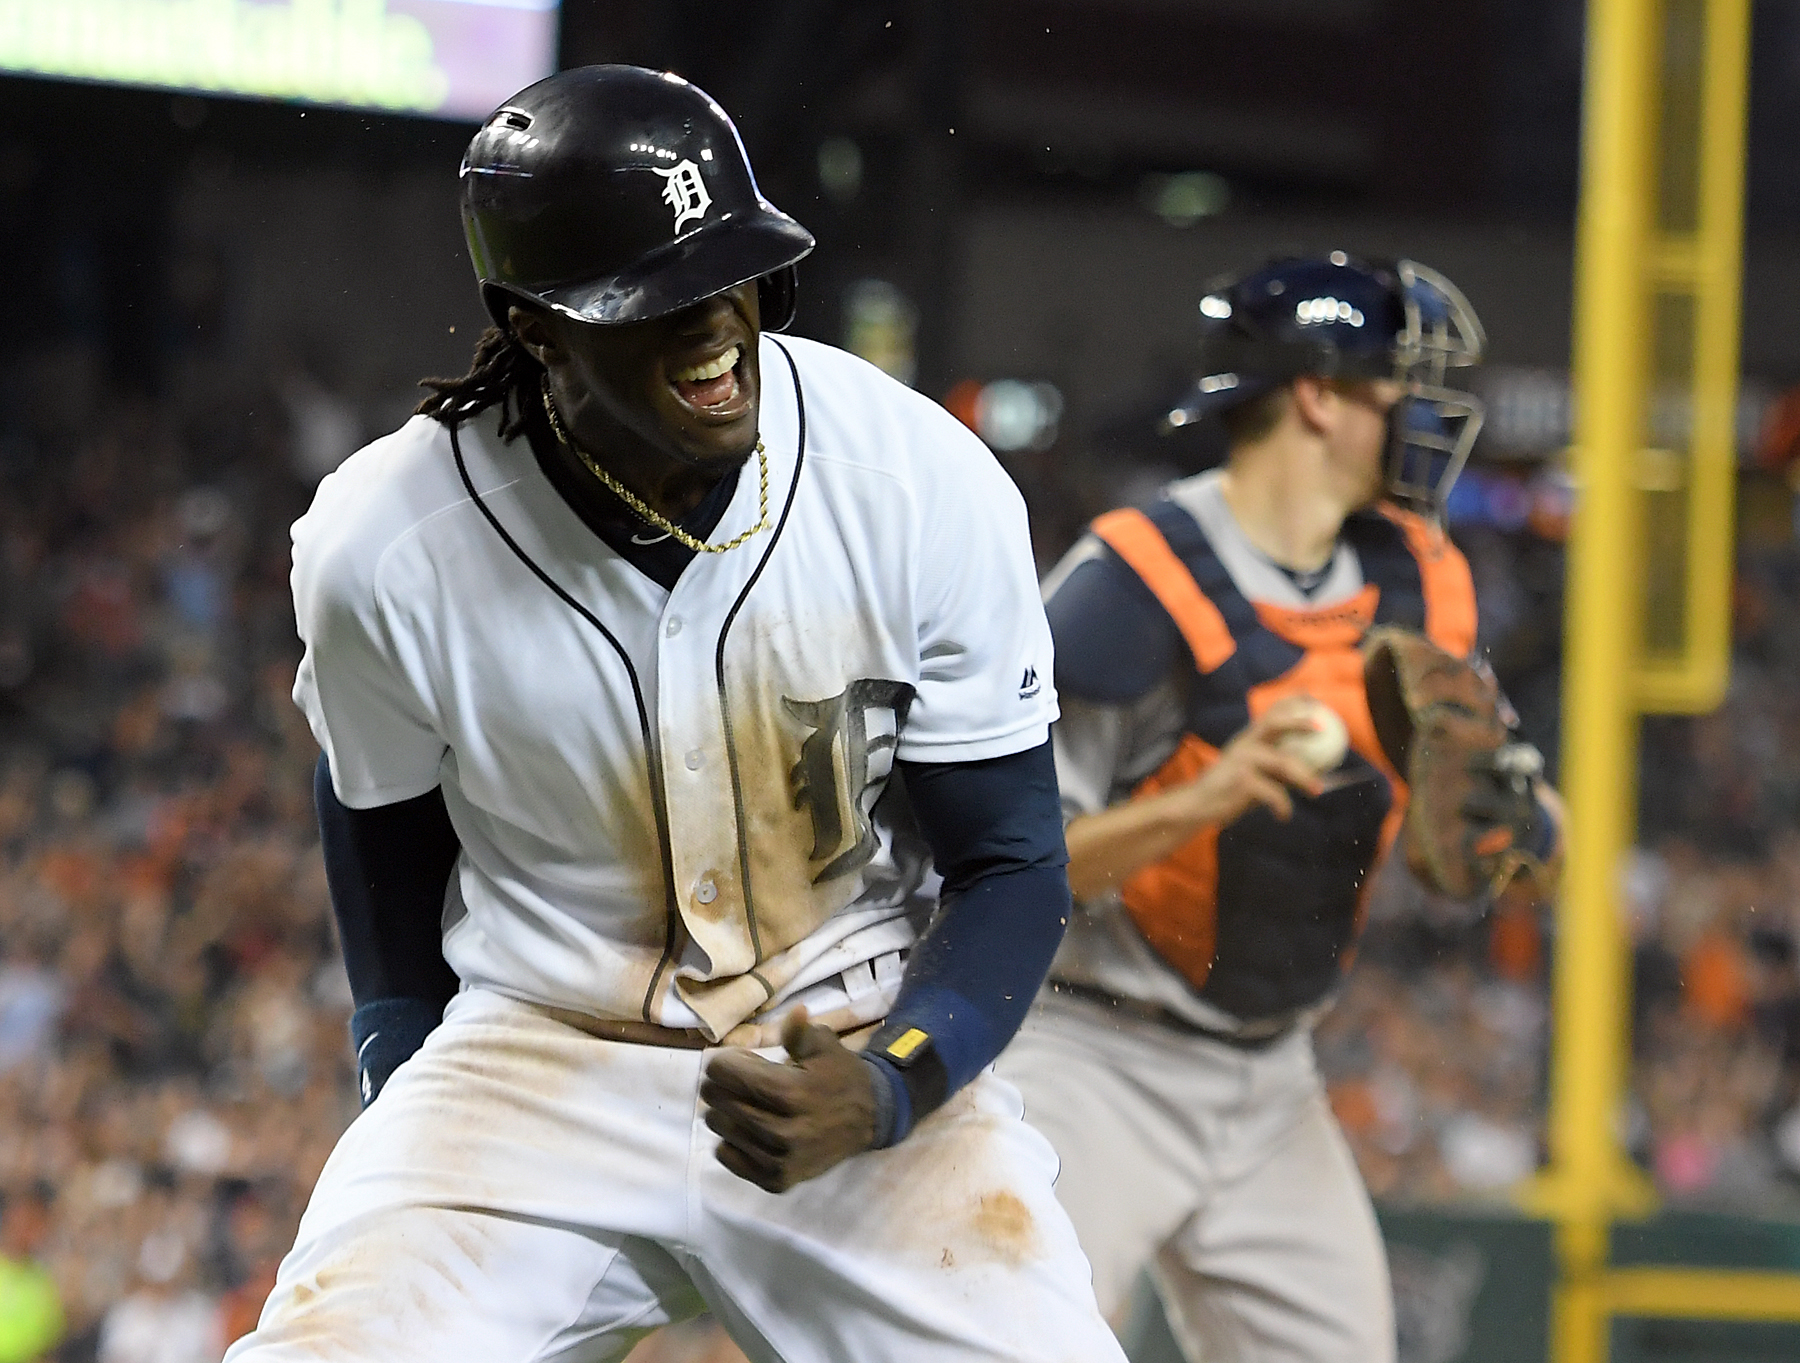 Detroit Tigers' Cameron Maybin celebrates after scoring  a run in the sixth inning after Astros second baseman Jose Altuve dropped a pop fly off the bat of Miguel Cabrera in shallow right field with two outs, in a baseball game Saturday, July 30, 2016, in